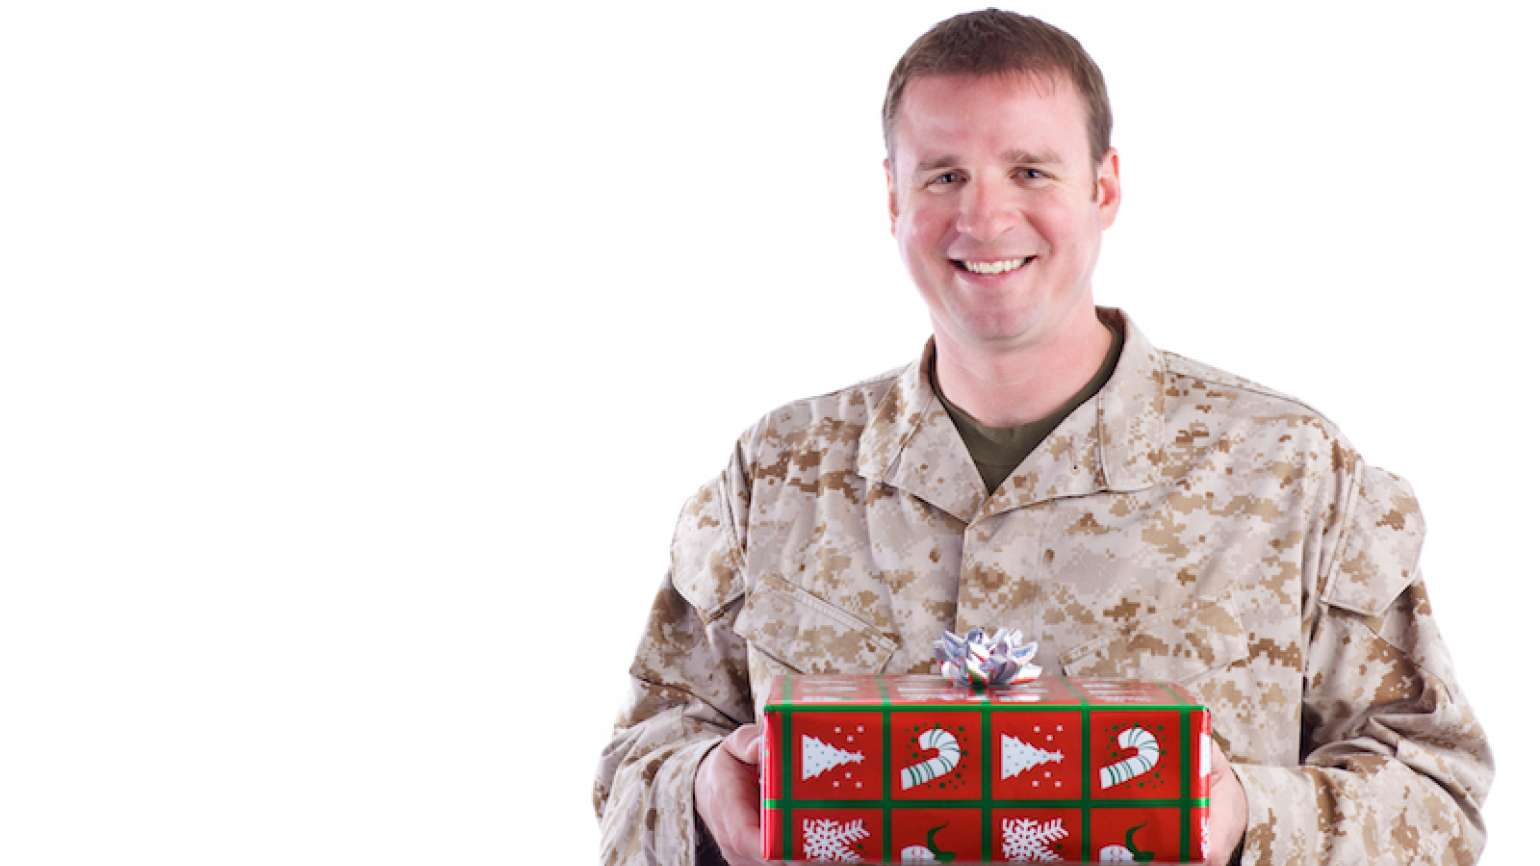 Gift list for soldiers. Photo by Jason Swarr for Thinkstock, Getty Images.